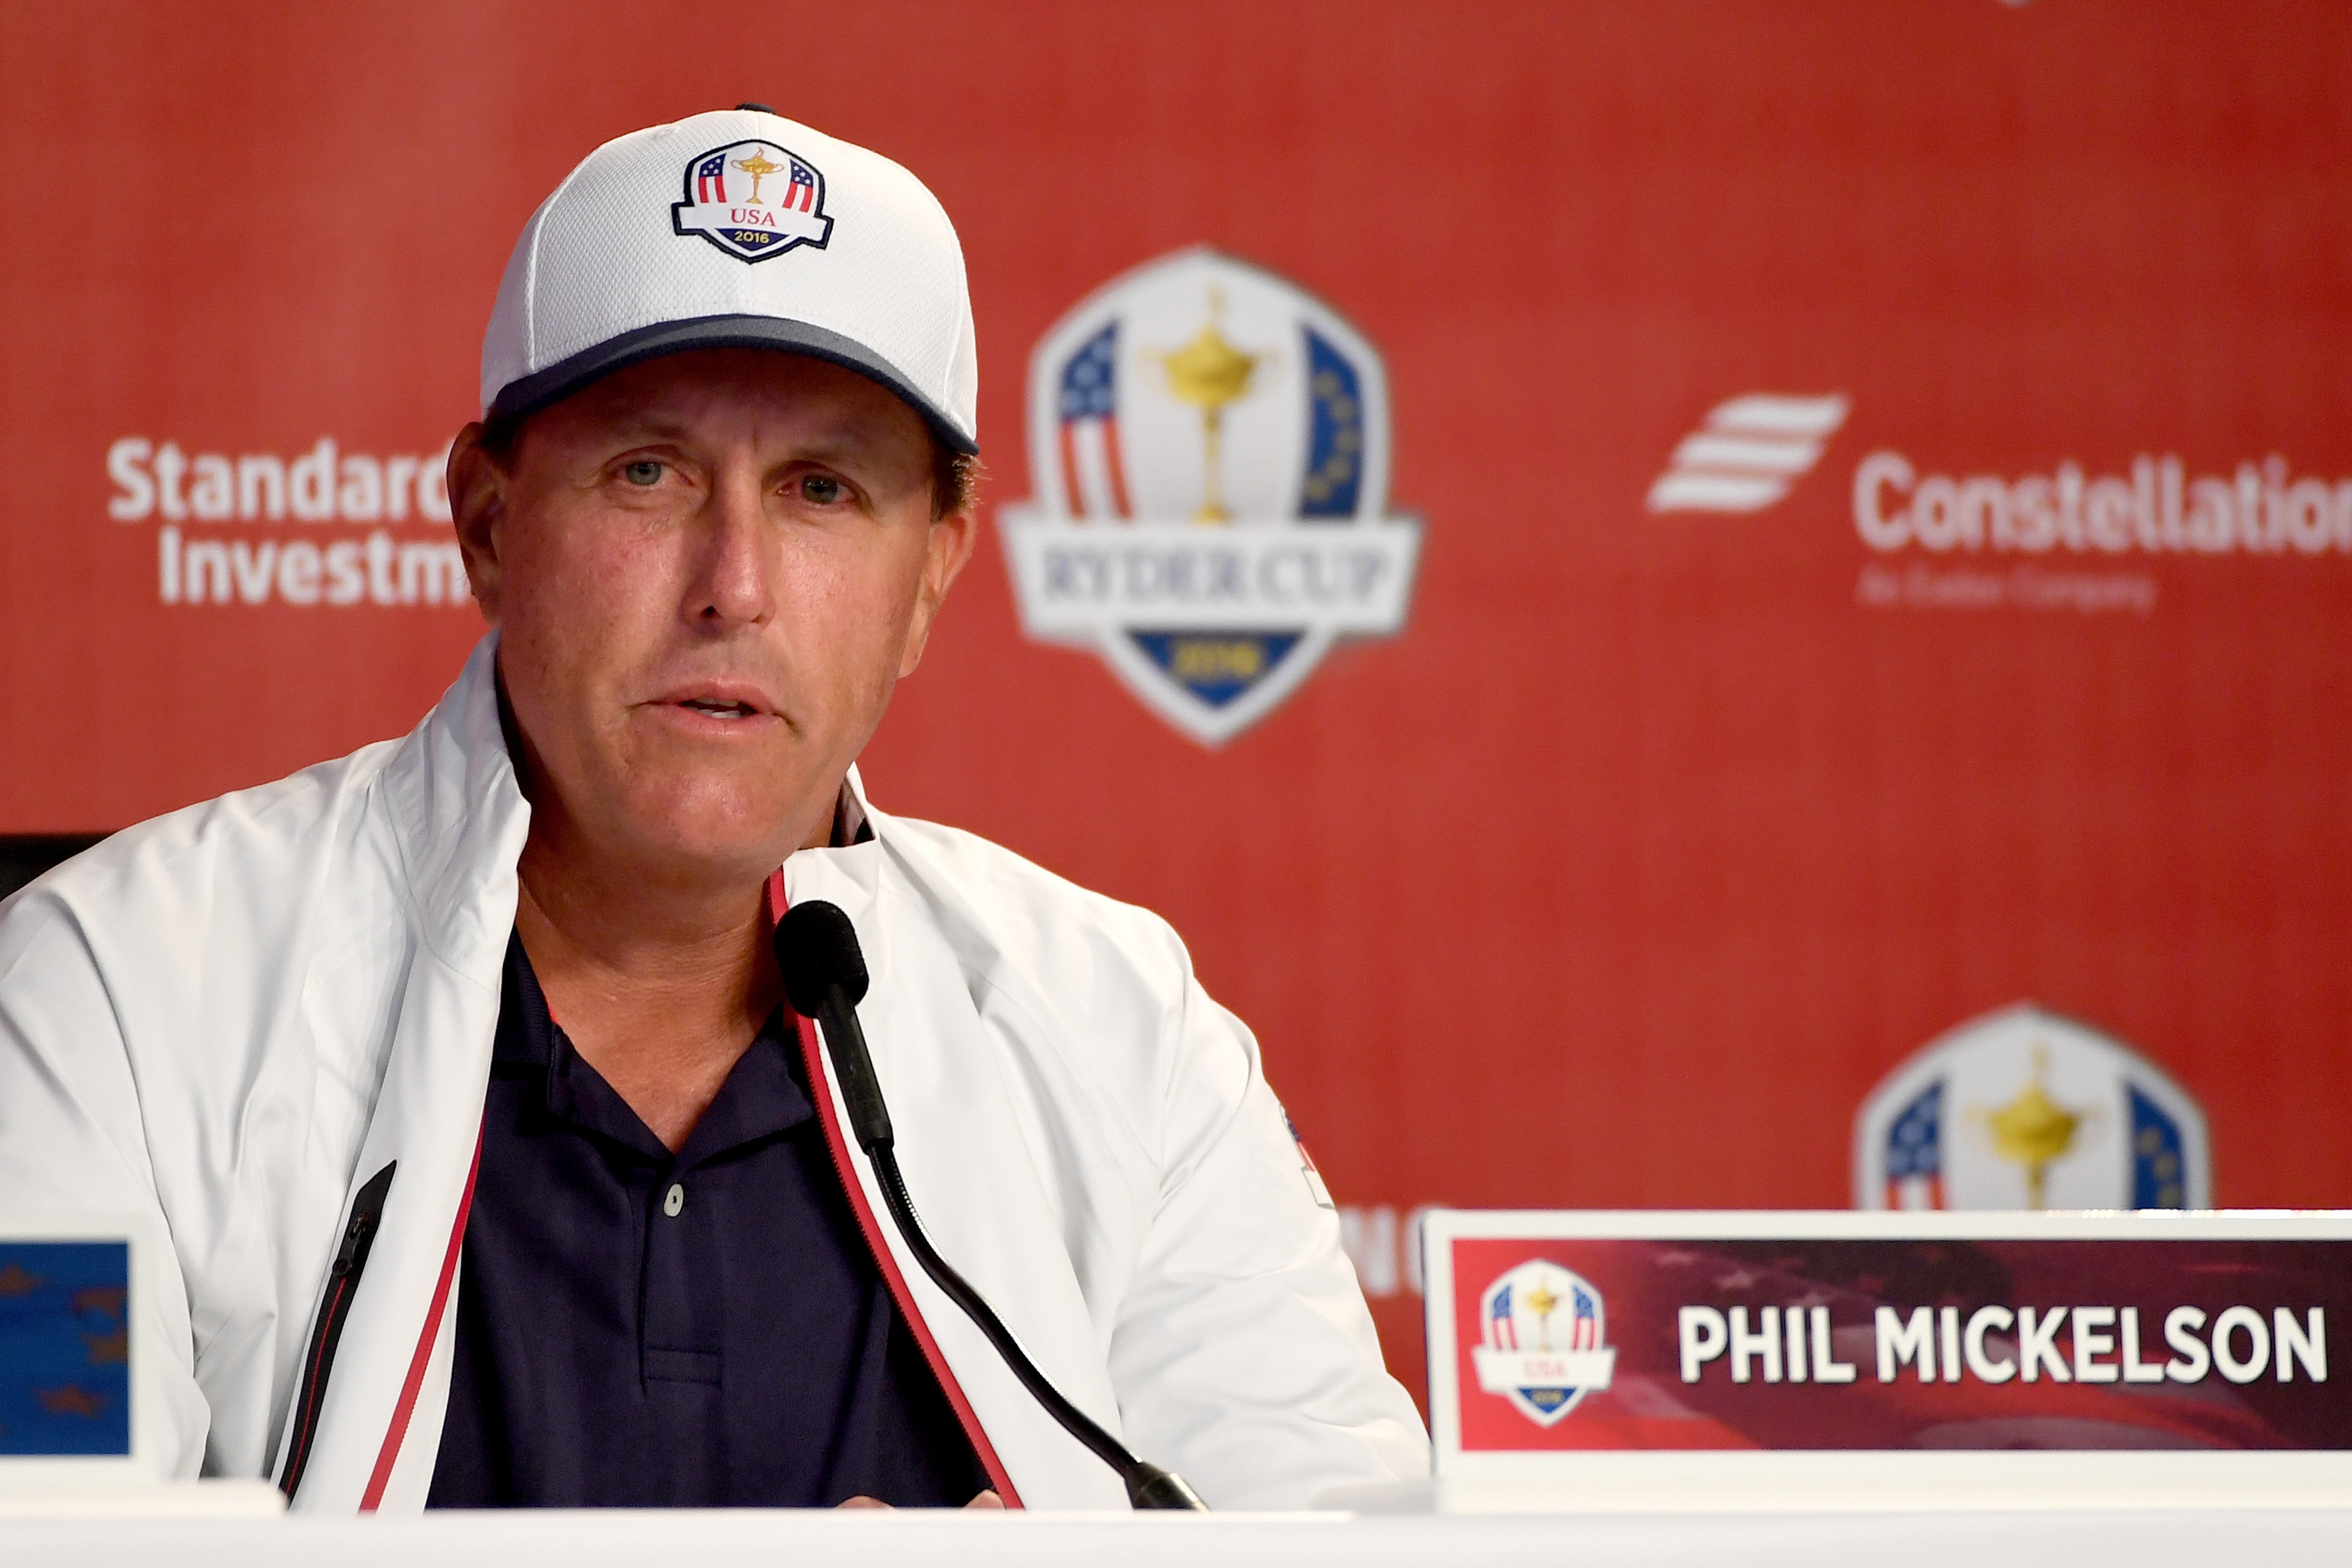 20 years of Ryder Cup frustration forced Phil Mickelson's hand.